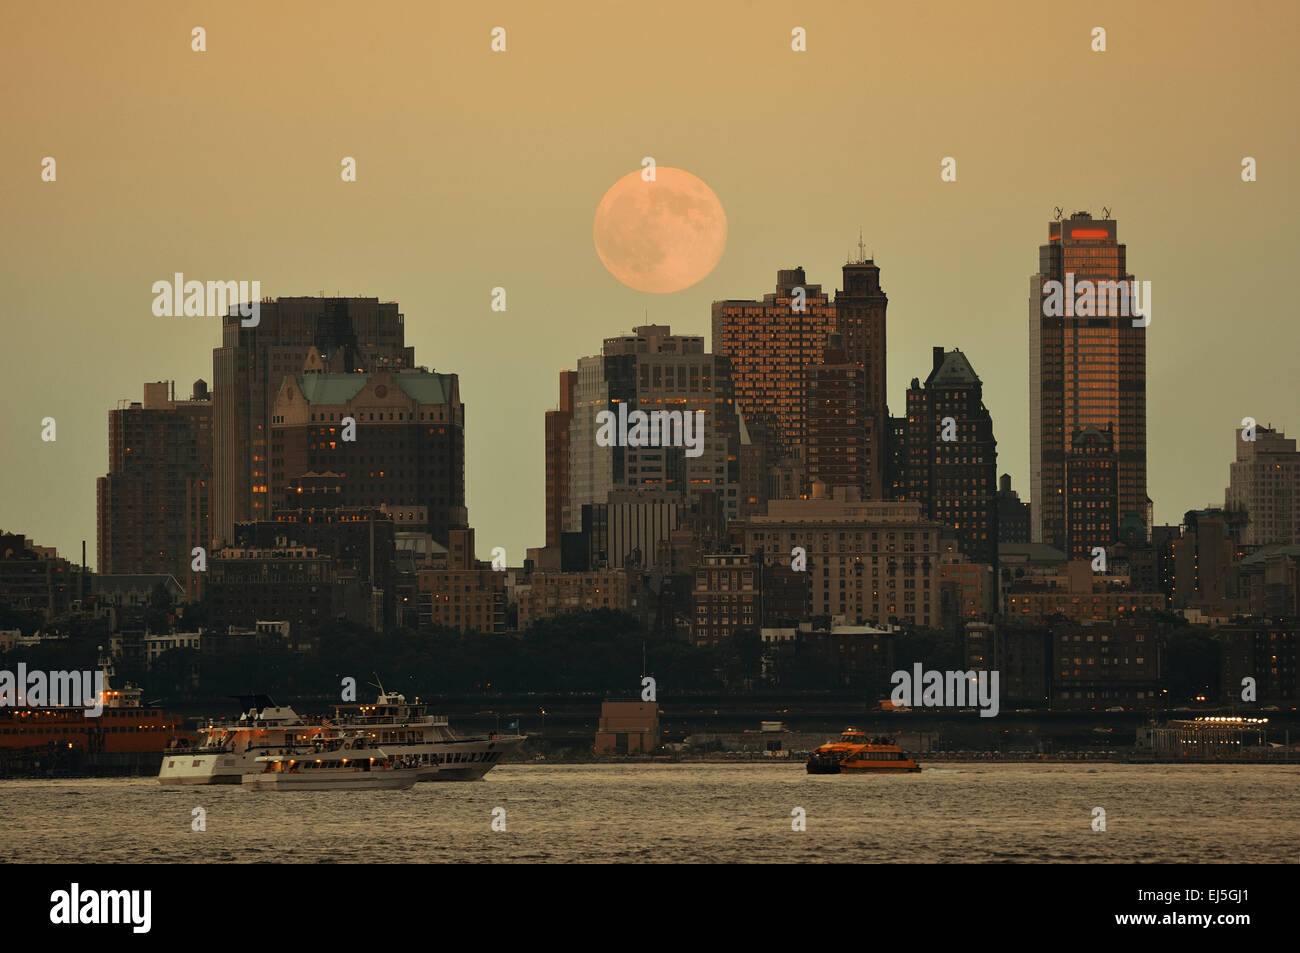 71549041f623d Super Moon and downtown buildings in Brooklyn - Stock Image